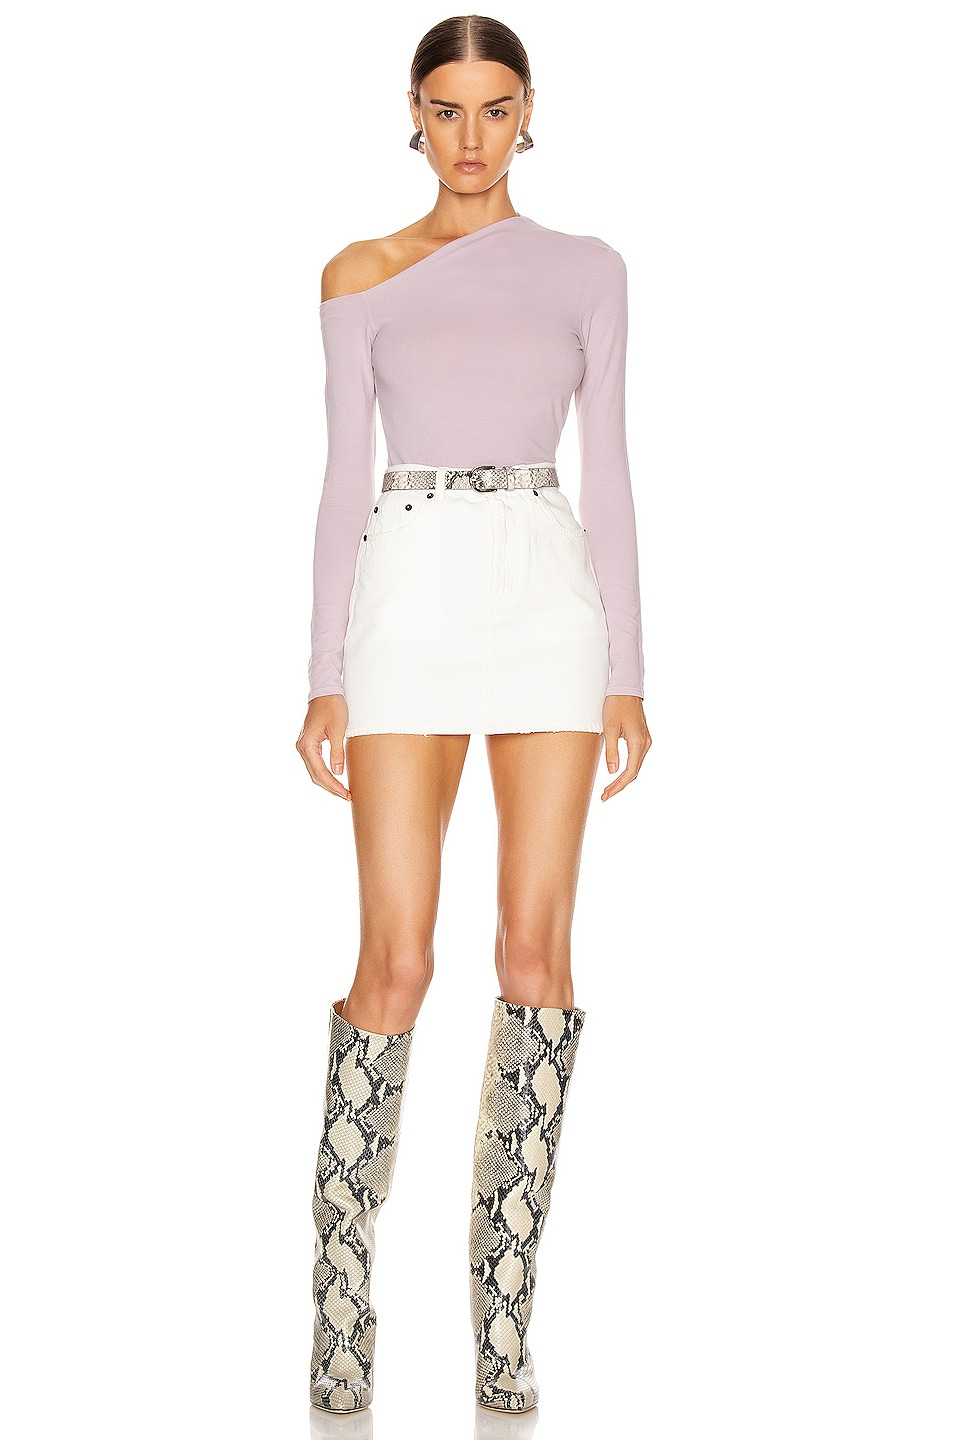 Image 5 of Enza Costa Angled Exposed Shoulder Long Sleeve Top in Pink Crystals